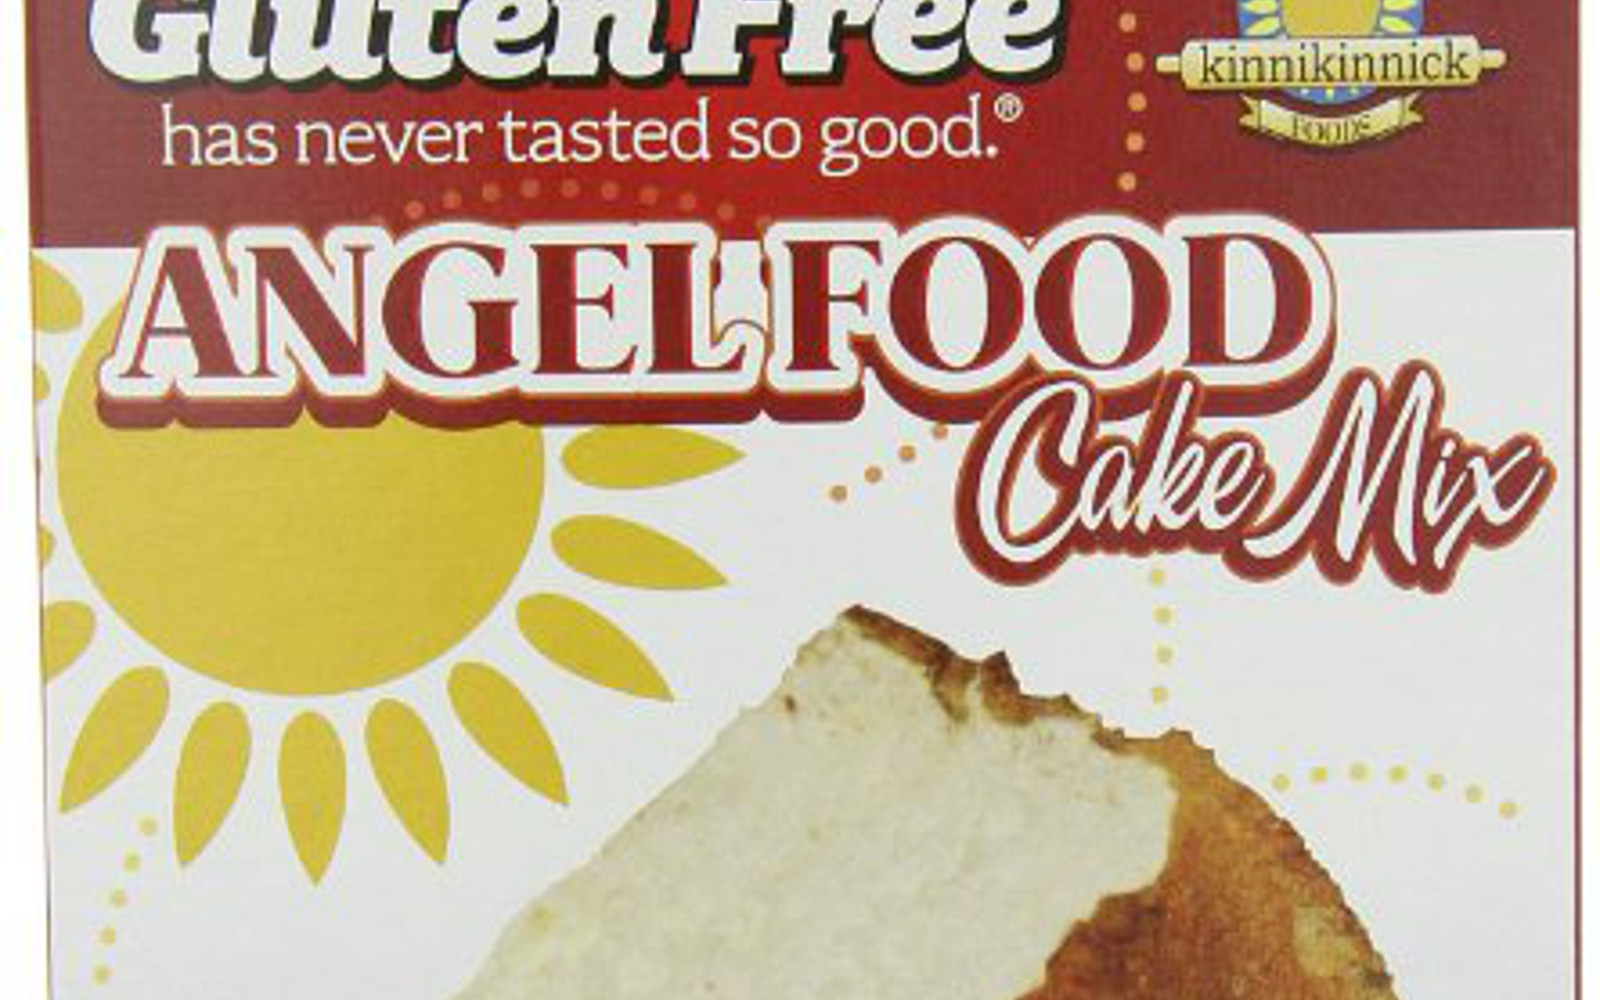 Where Can I Buy Gluten Free Angel Food Cake Mix